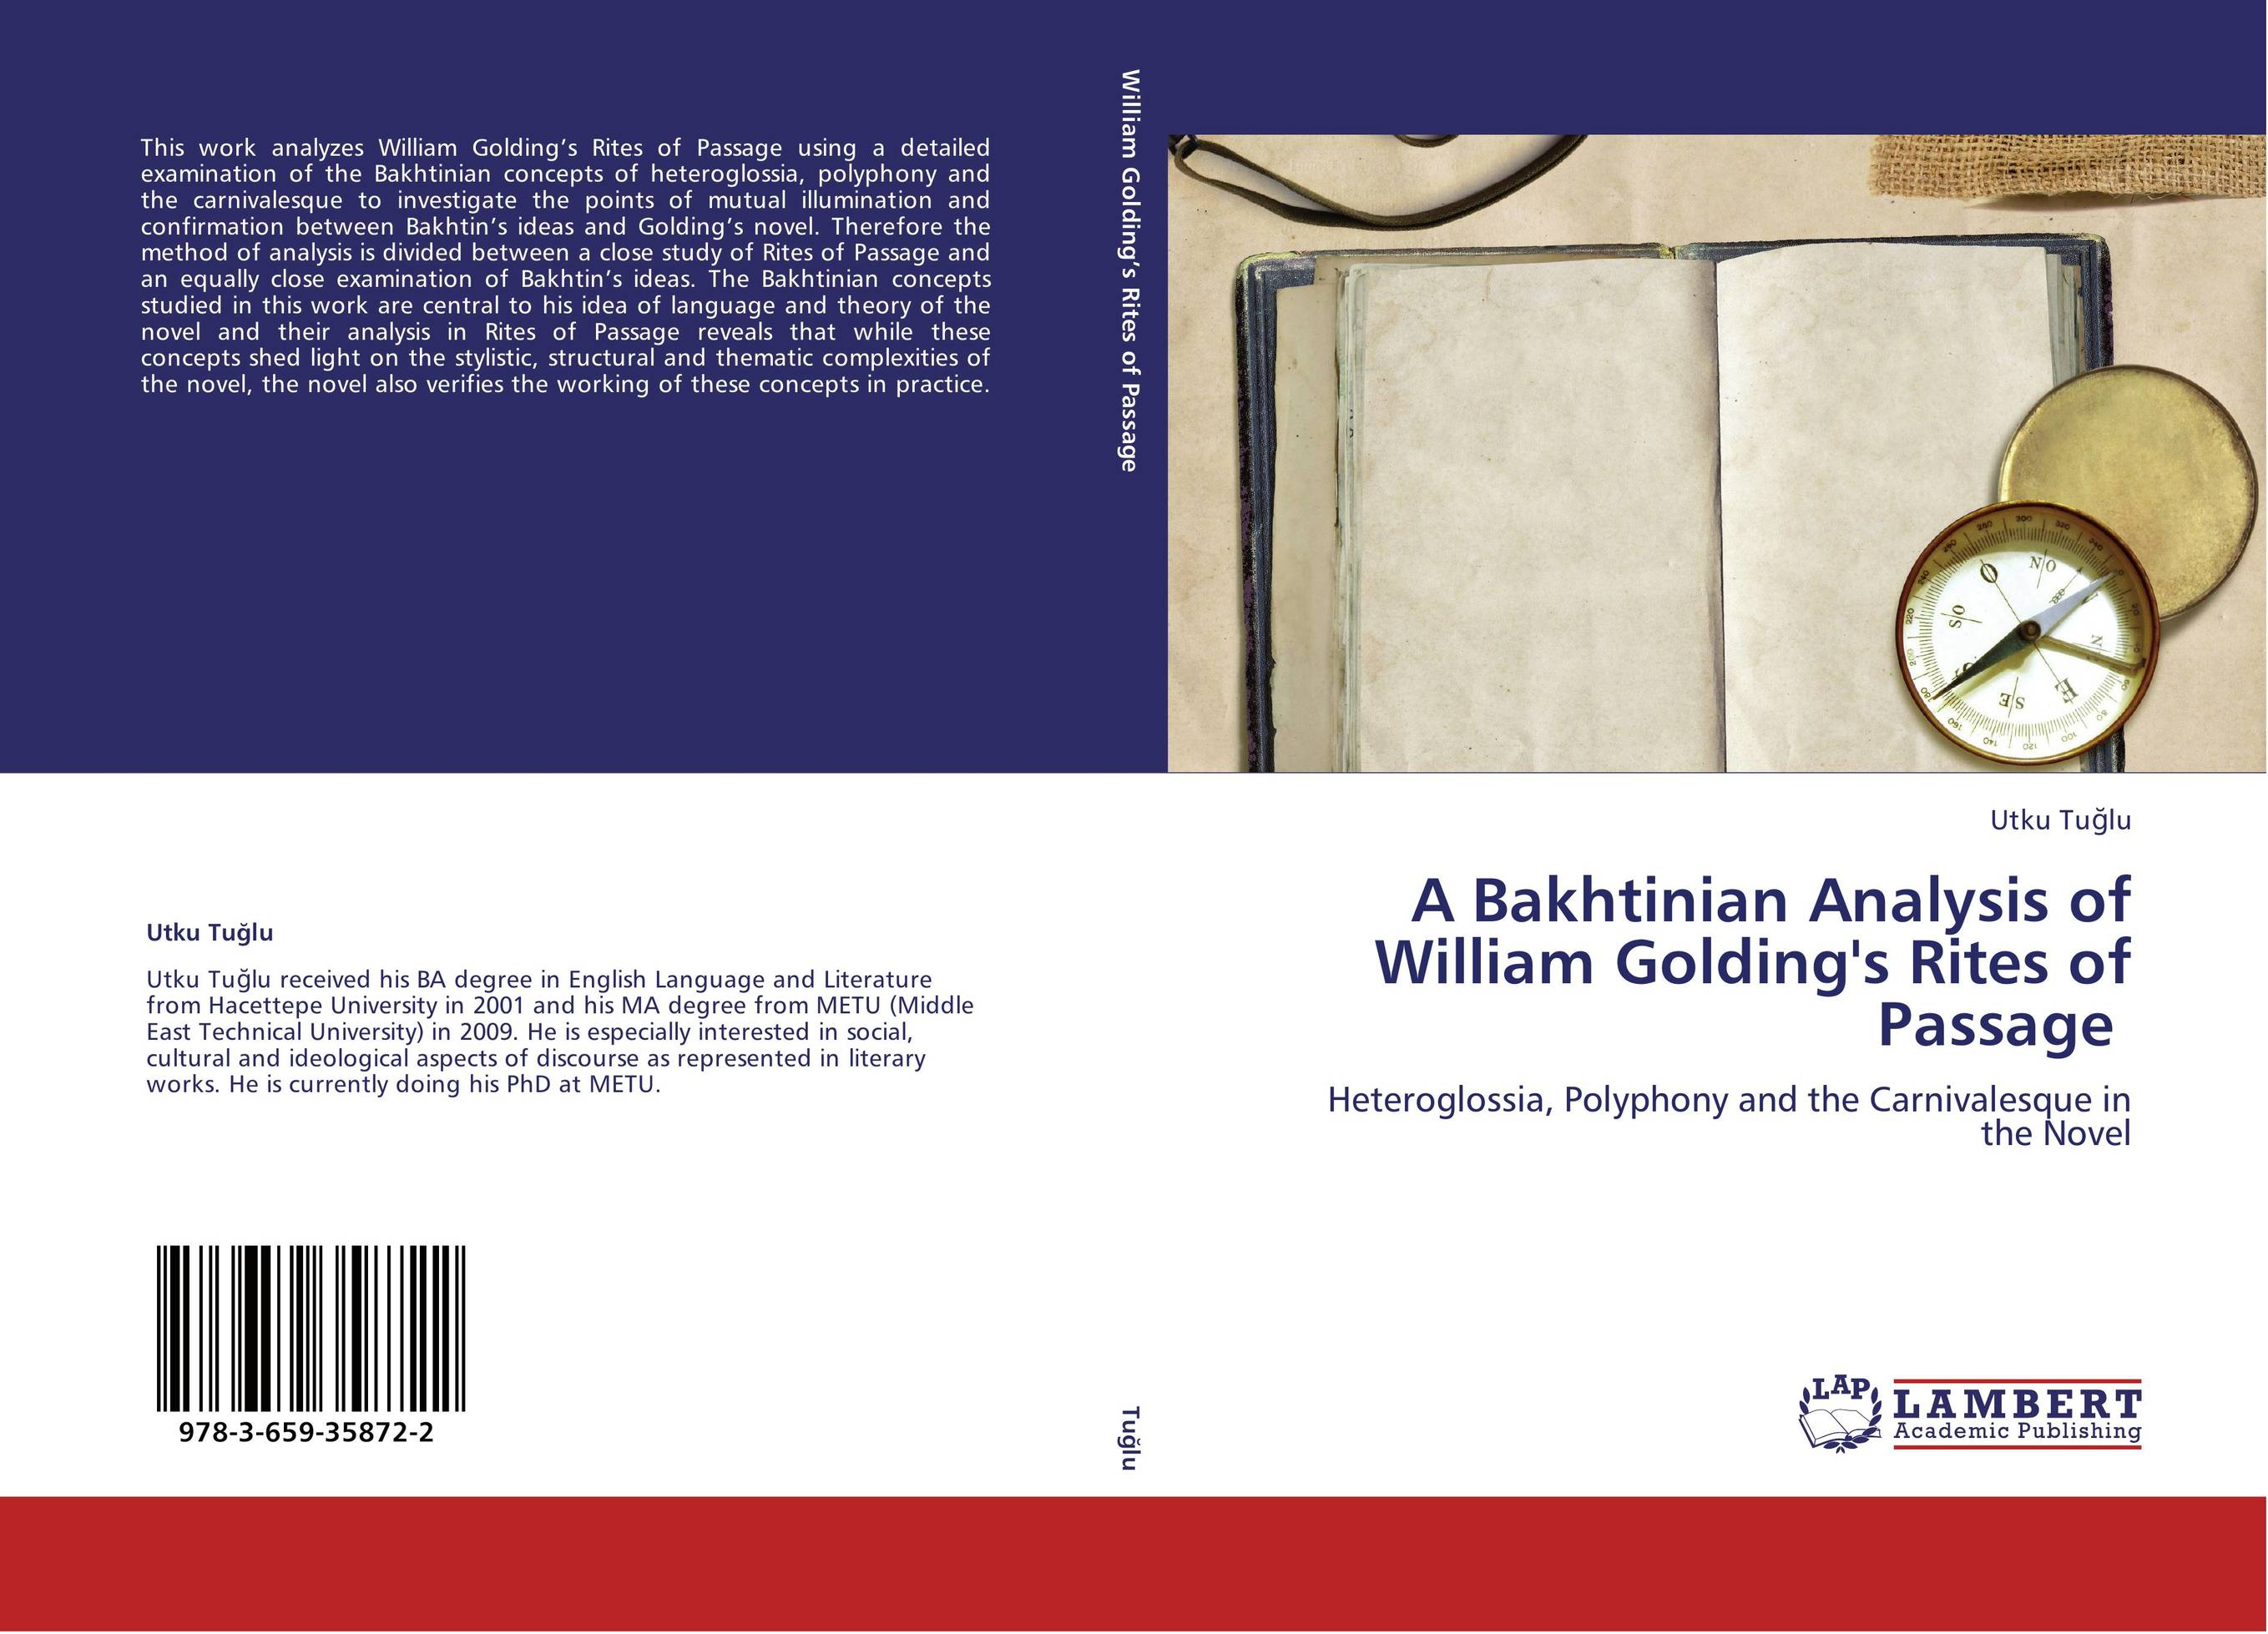 an analysis of william golding s free Literary text: lord of the flies by william golding (penguin publishing) also, a lot of analysis has been made about ties to the book and freud's.